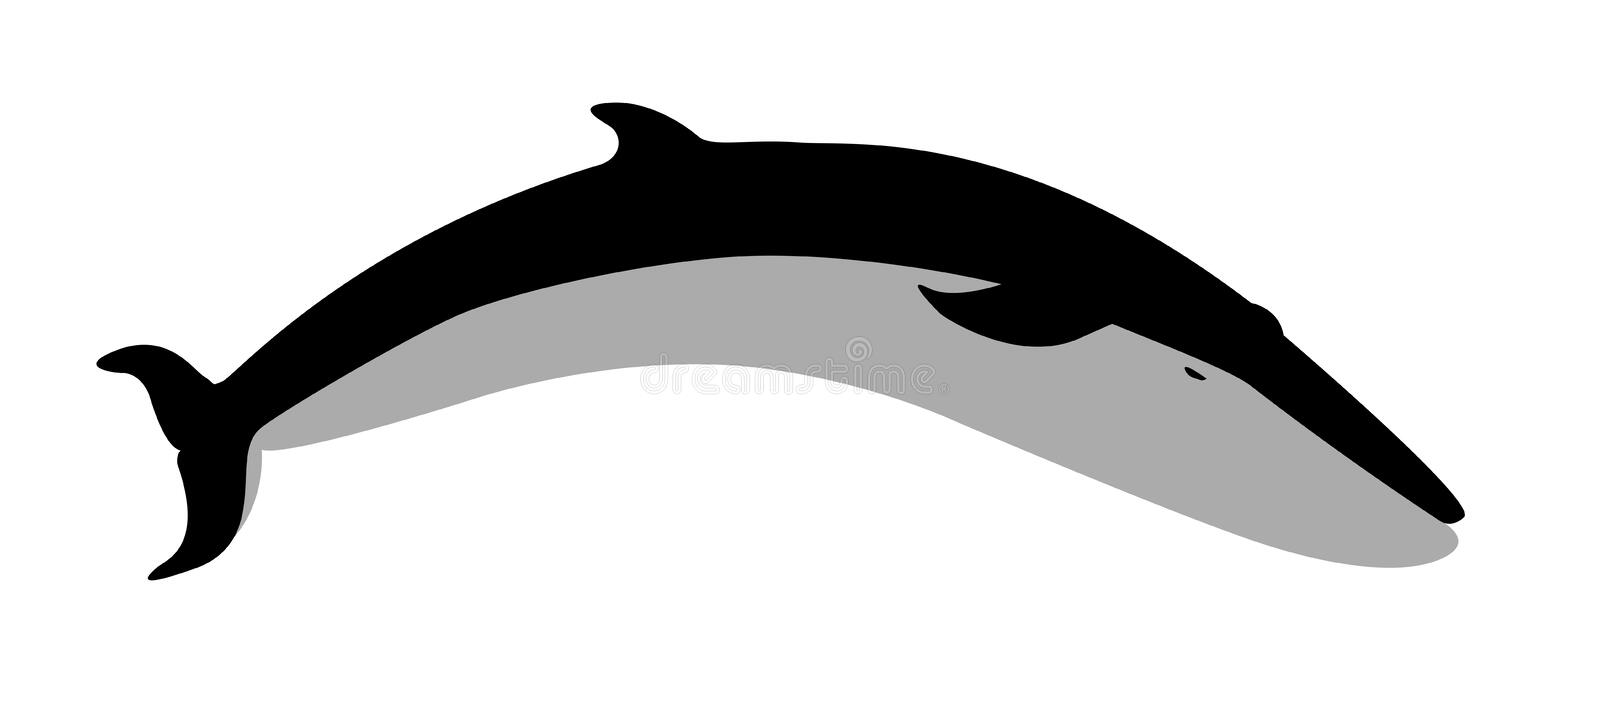 Whale royalty free stock photography